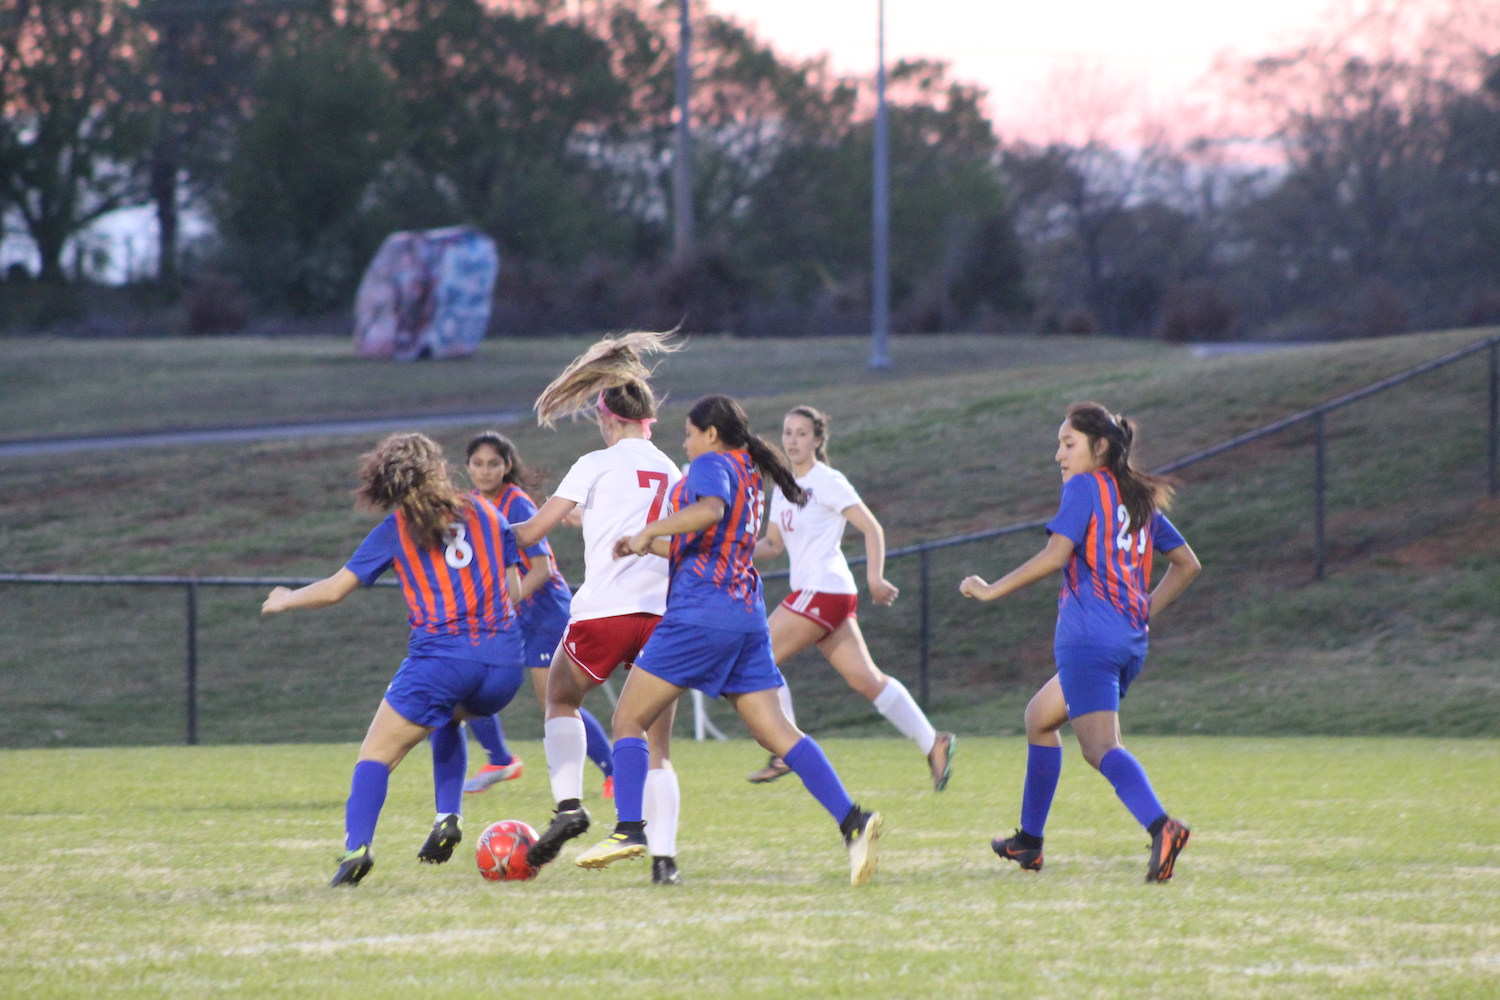 Sophomore Zoe Kennedy maneuvers through the Richland Northeast defensive line for a shot on goal.